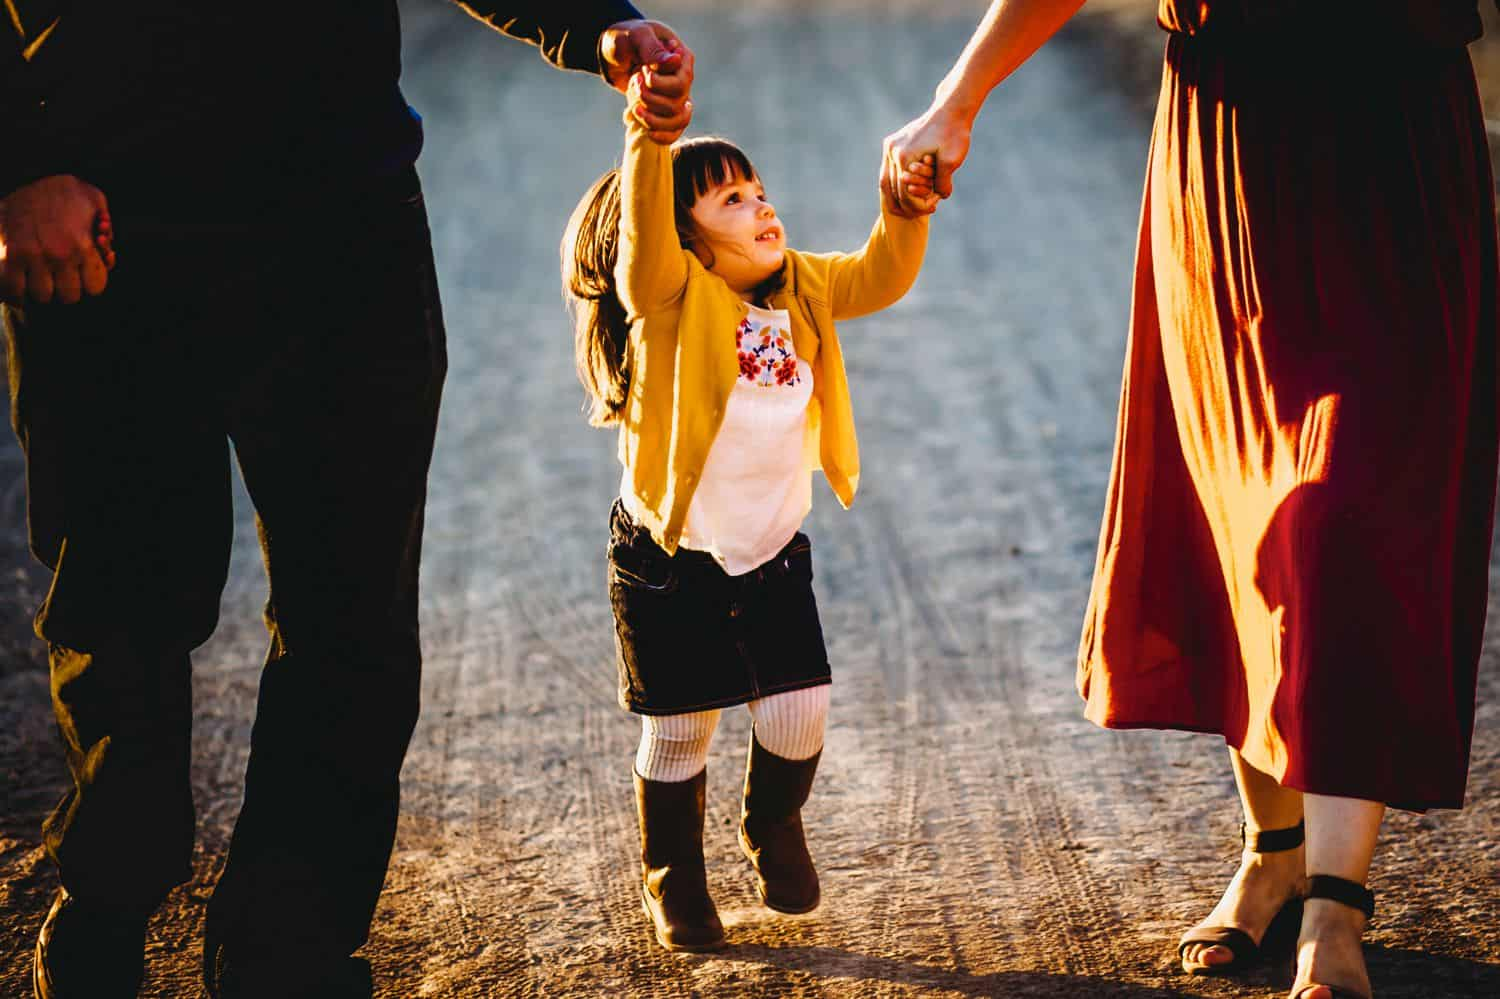 A little girl holds her parents hands and skips down a gravel road. The parents are only visible from the waist-down.